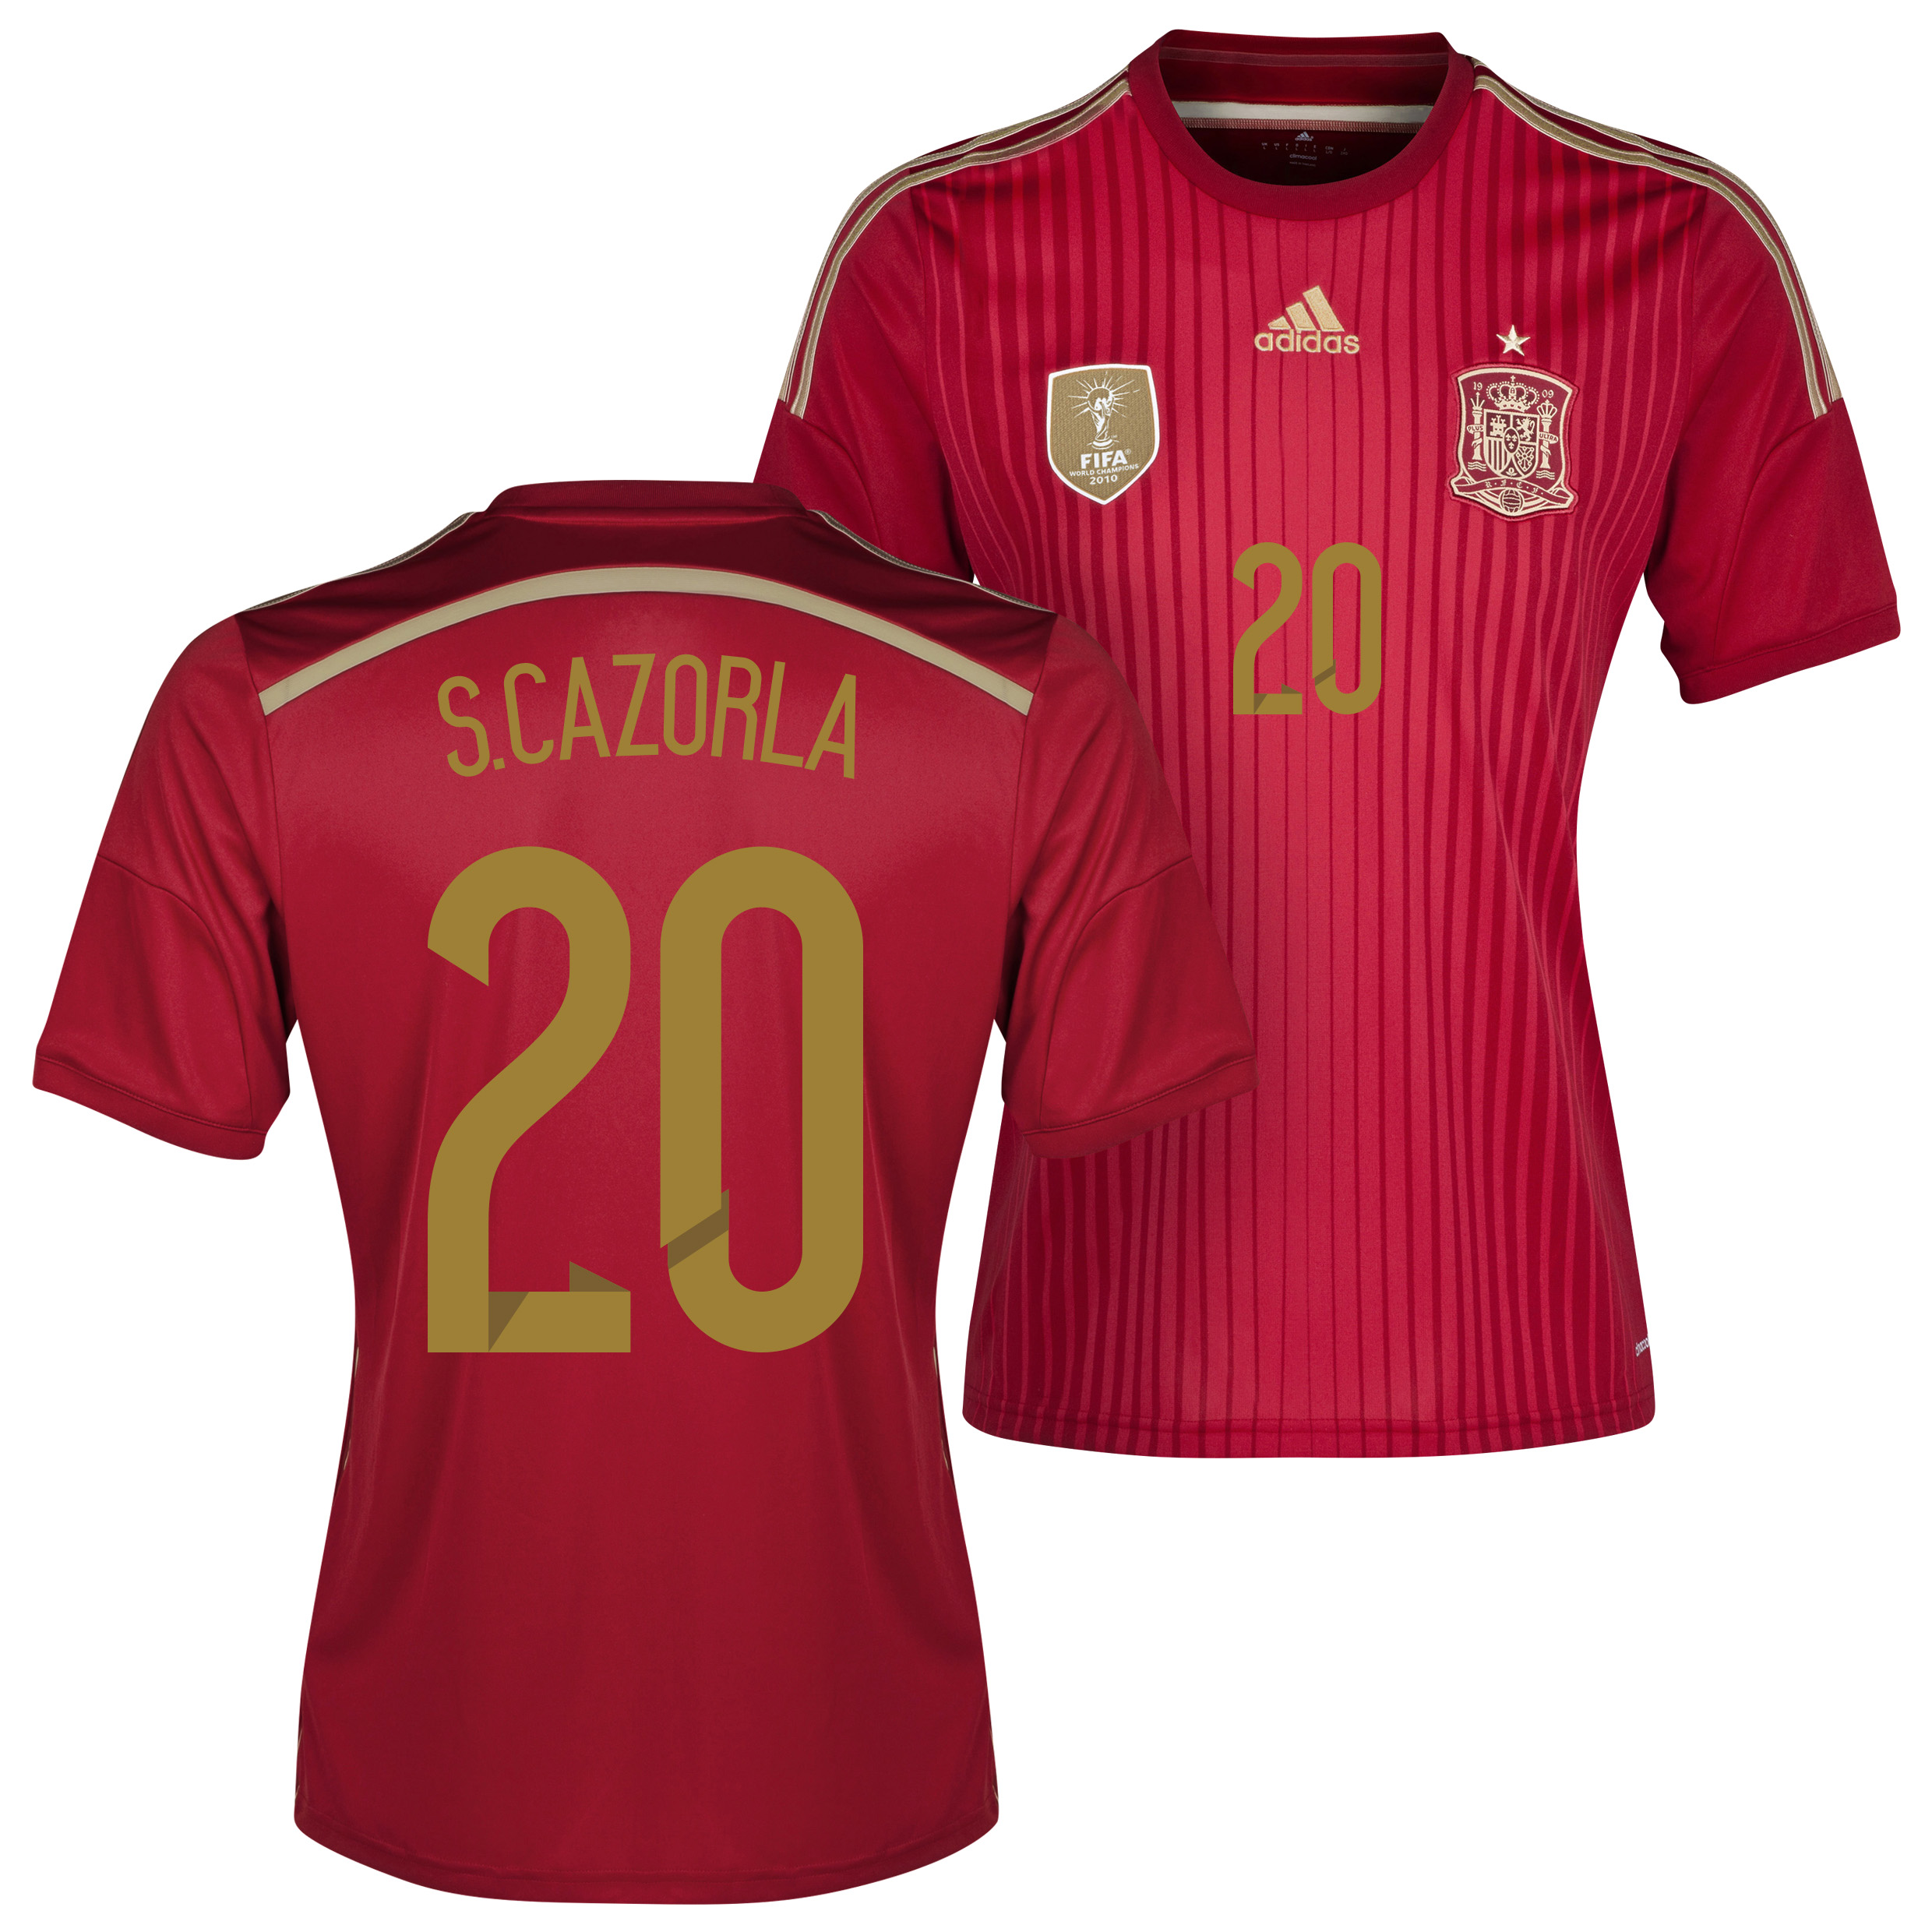 Spain Home Shirt 2013/15 with S. Cazorla 20 printing